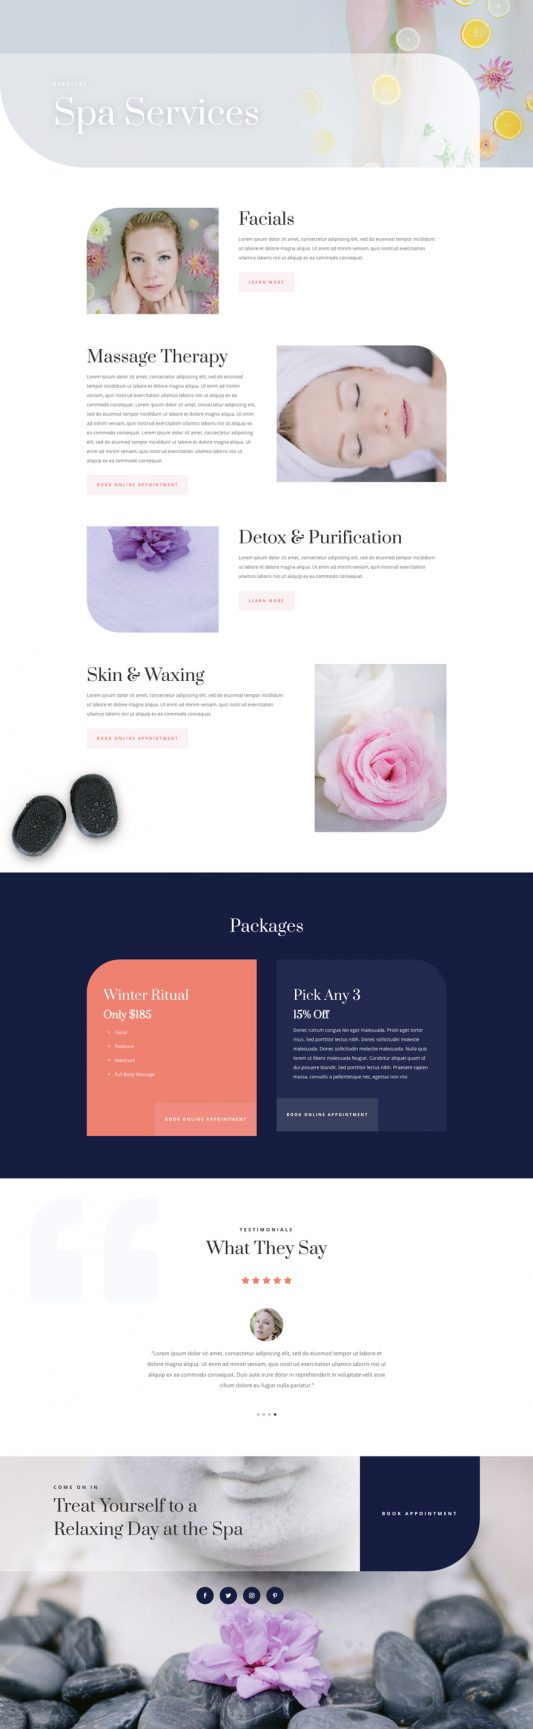 Day Spa Web Design 6